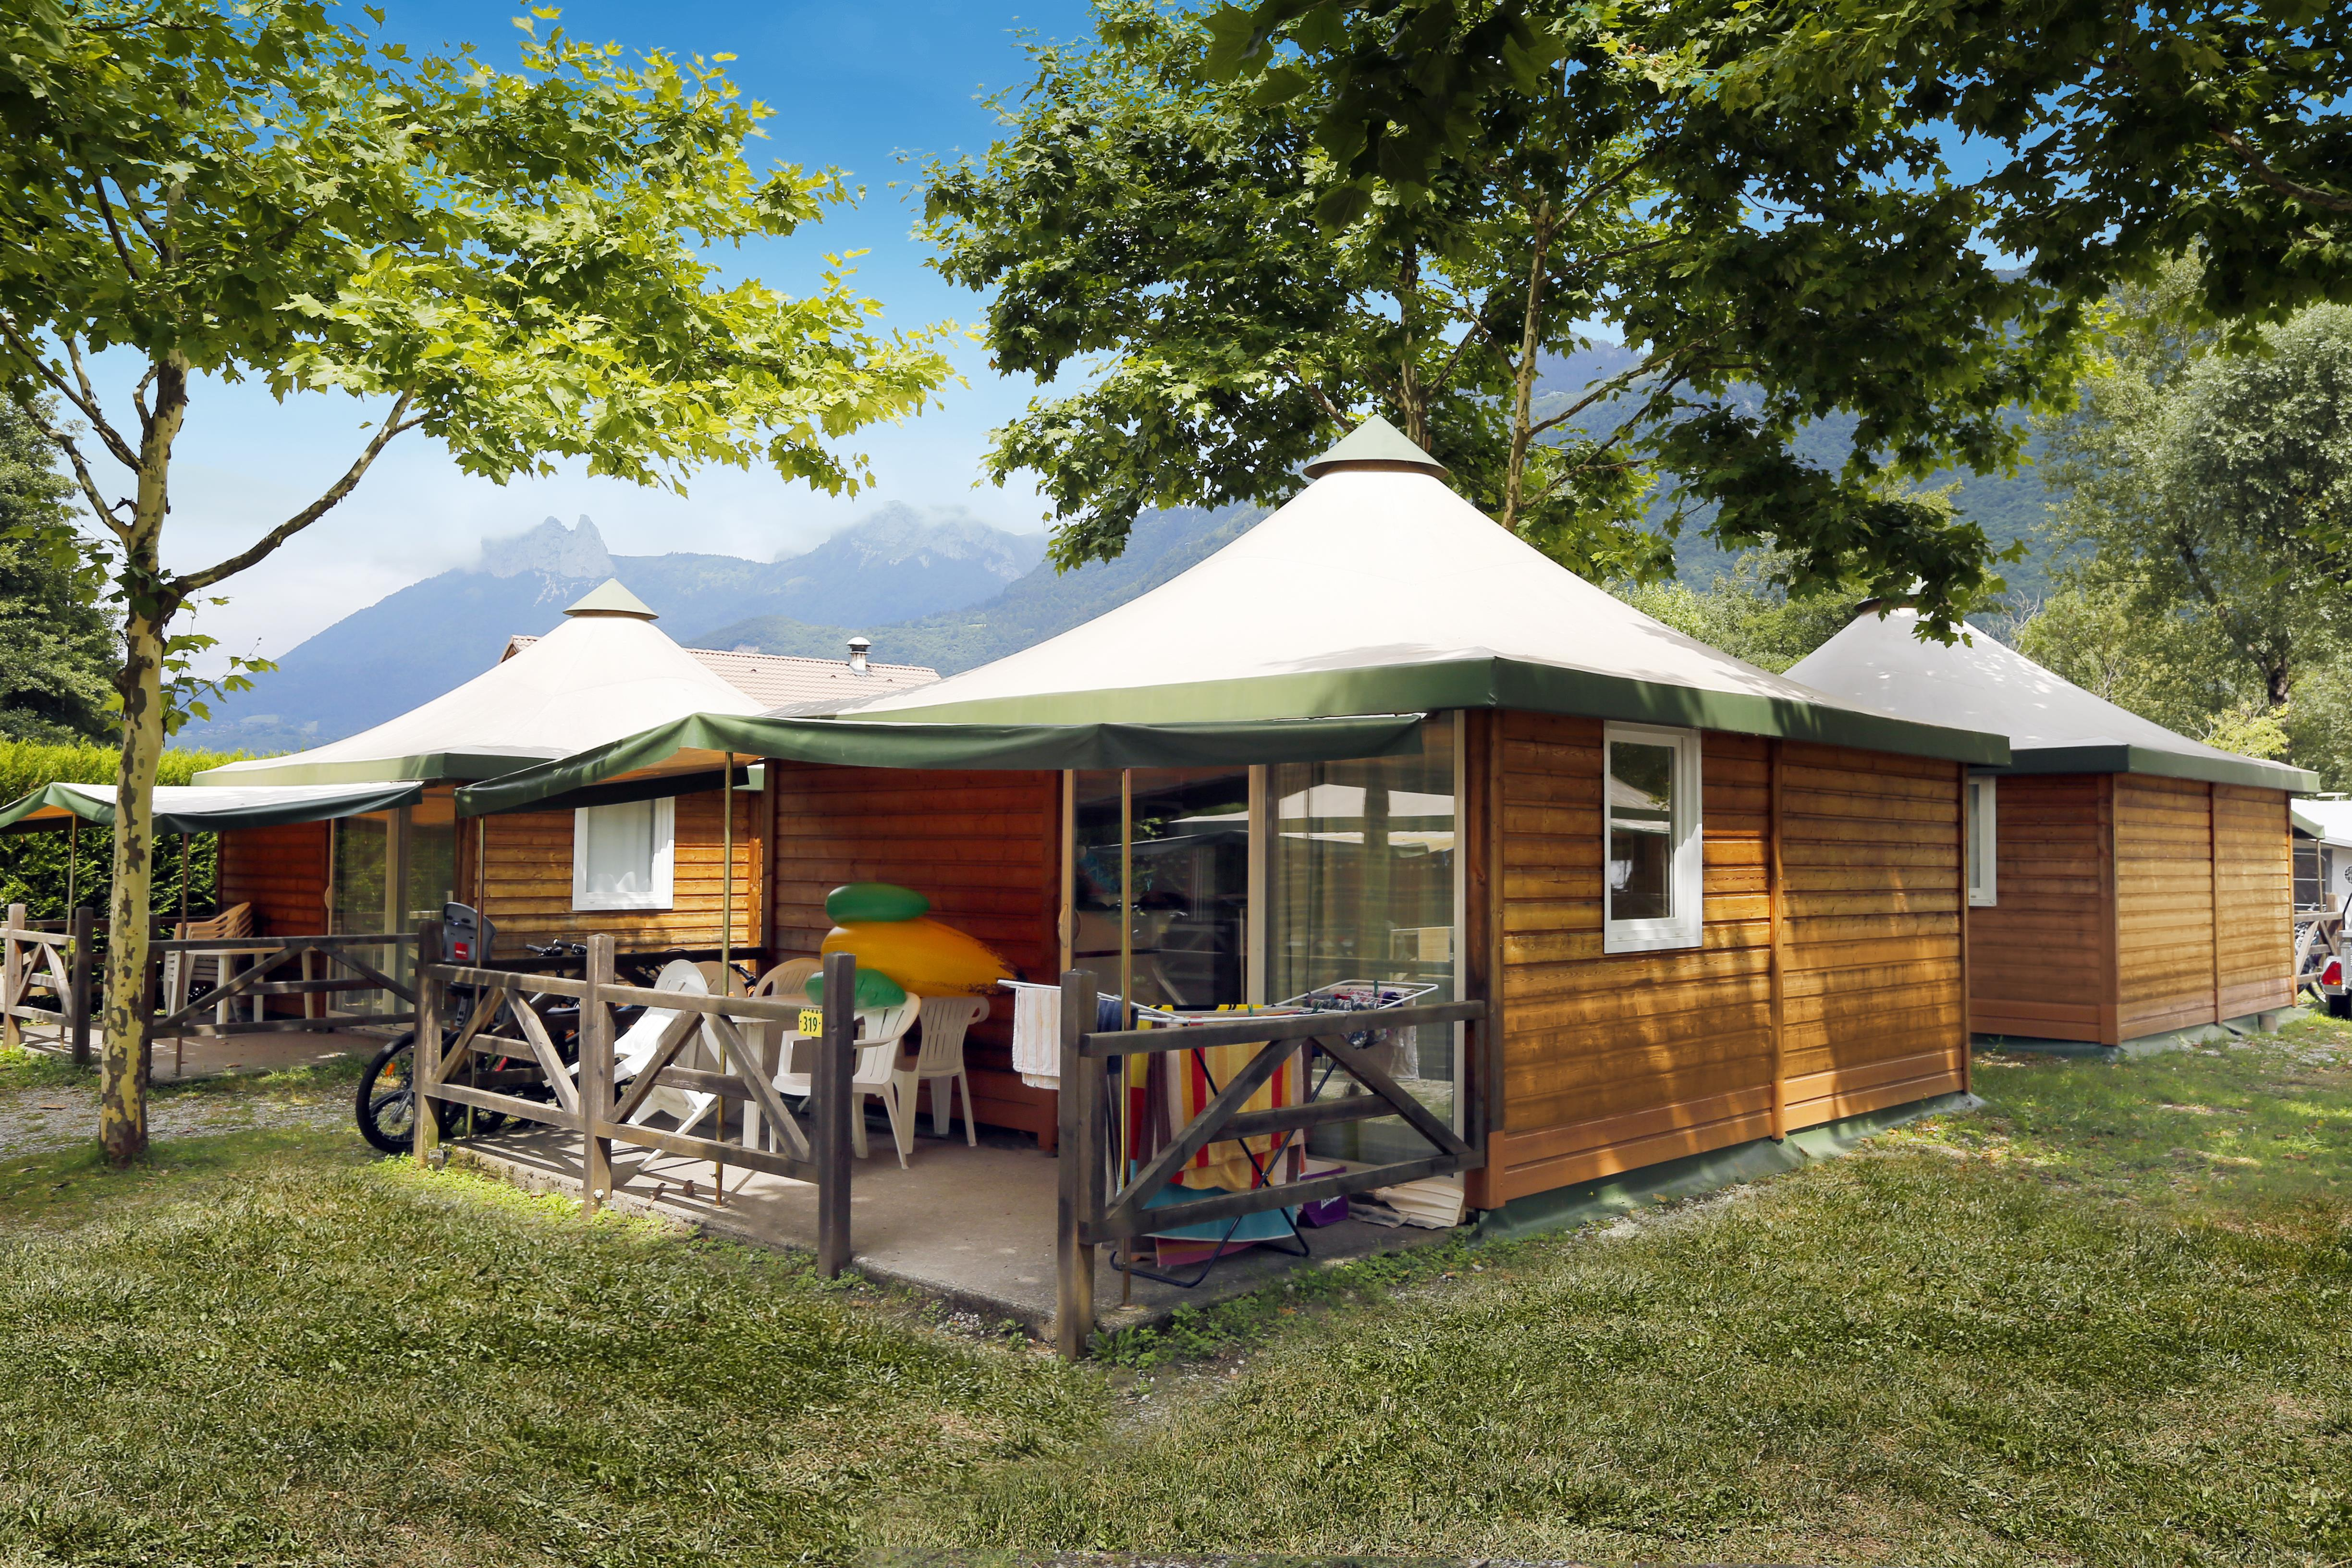 Locatifs - Chalet 2 Chambres - Camping Campéole Clairefontaine